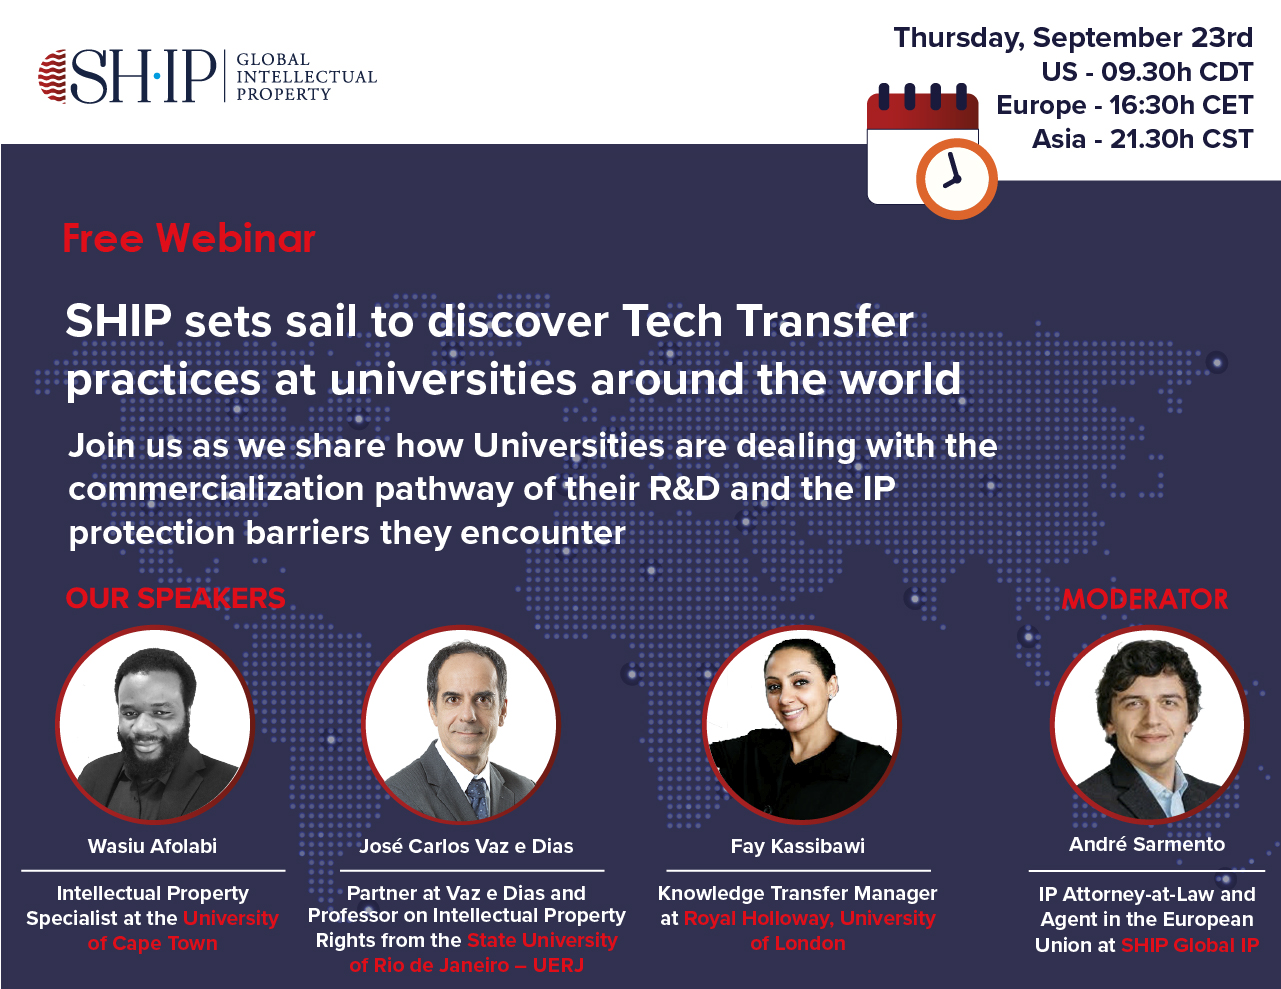 SHIP sets sail to discover Tech Transfer practices at universities around the world